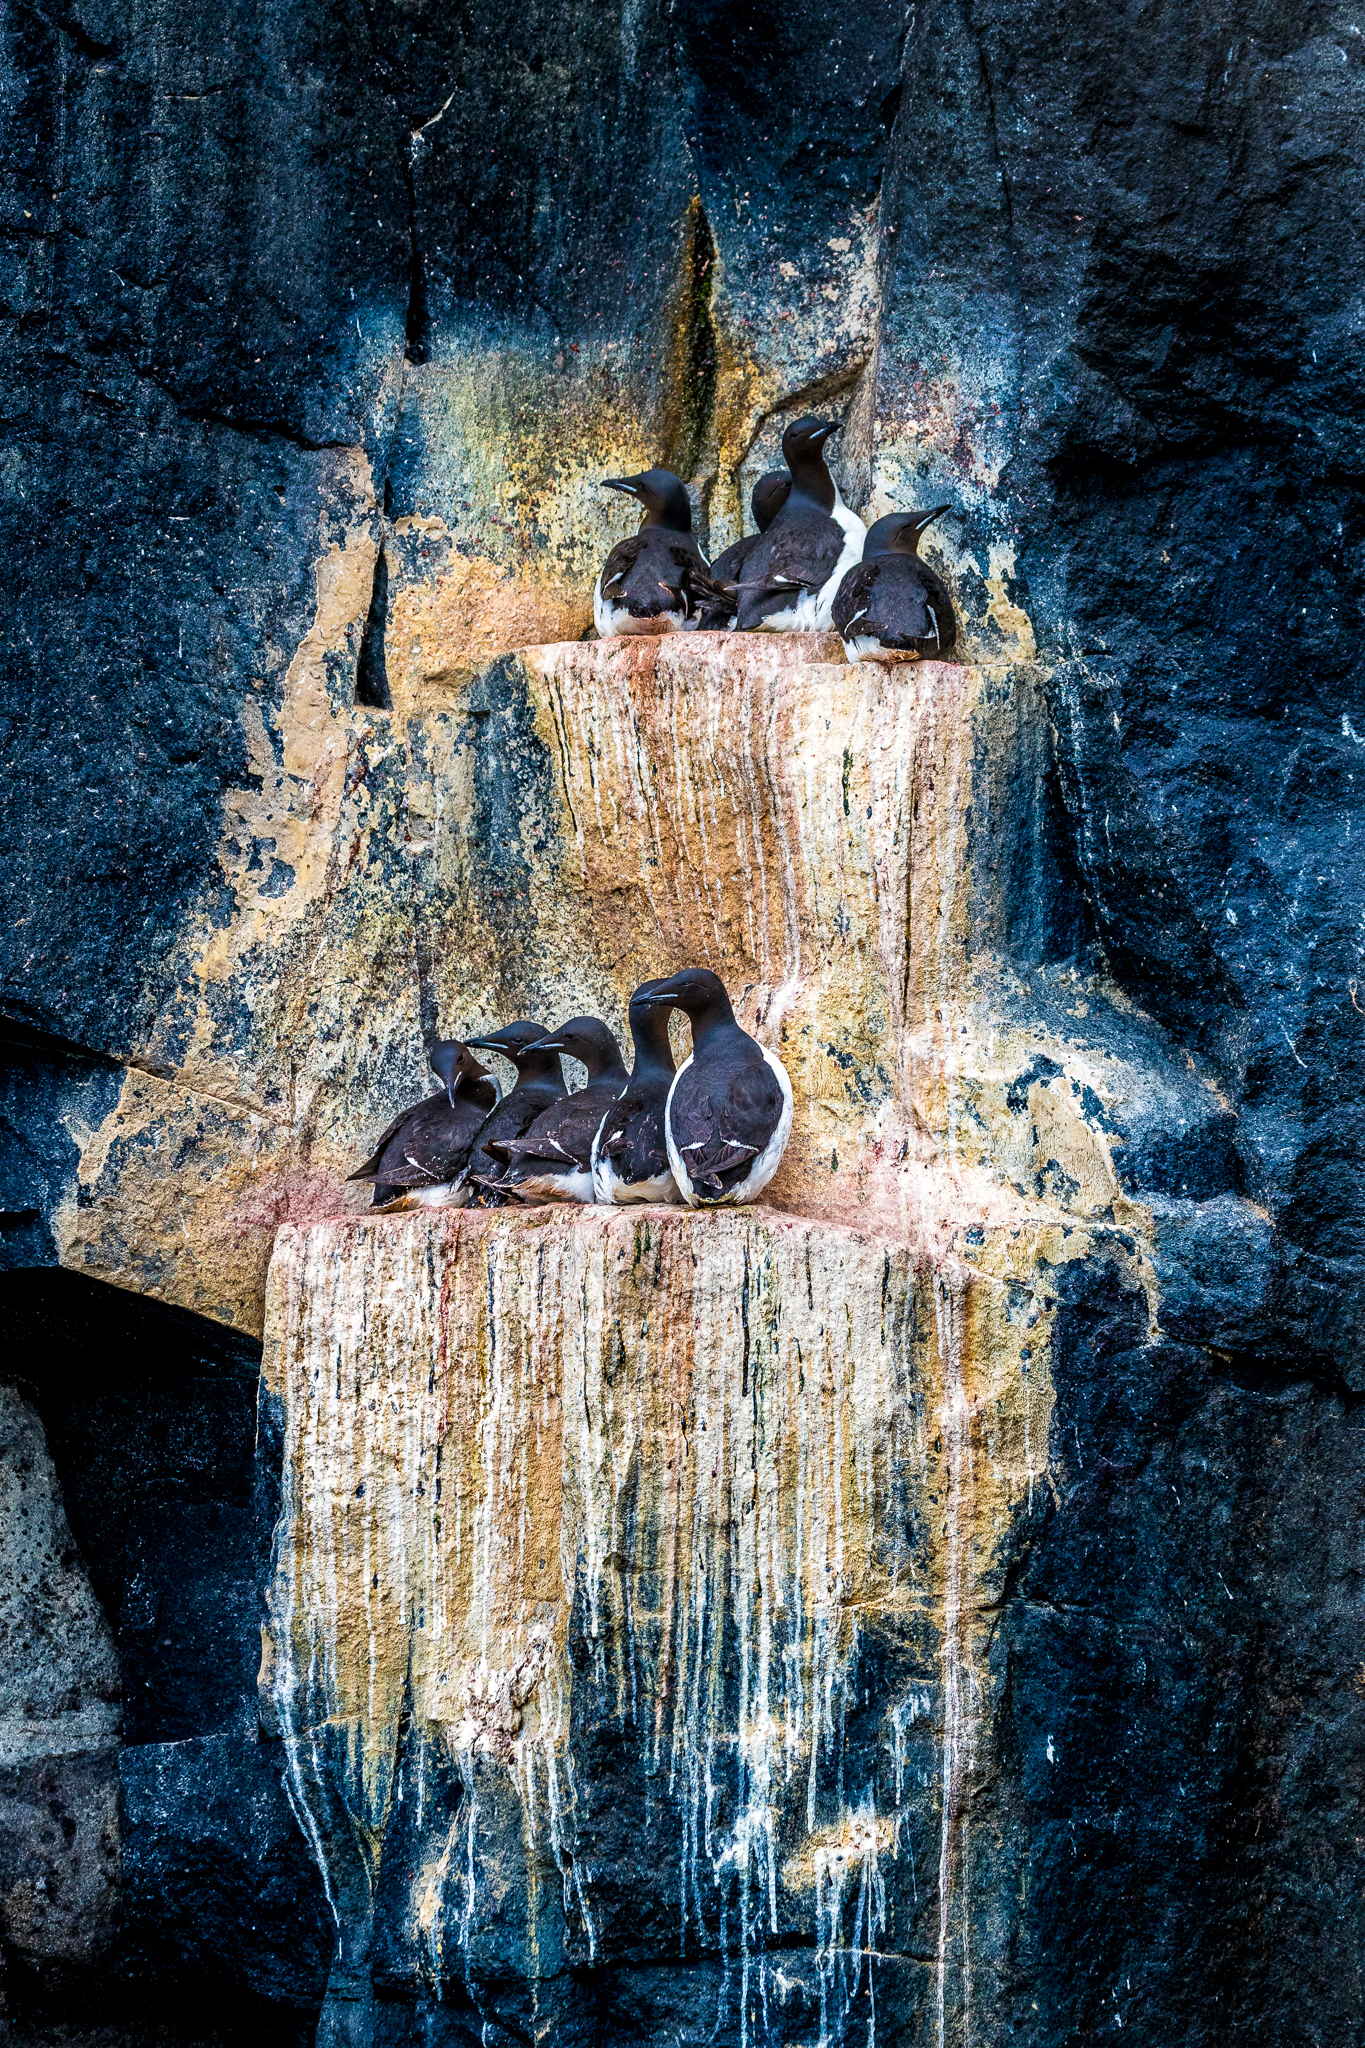 Brünnich's guillemots are the largest living members of the auk family. They crowd the narrow ledges of the dolerite cliffs of Kapp Fanshawe, Alkefjella. Photograph by Marcus Westberg